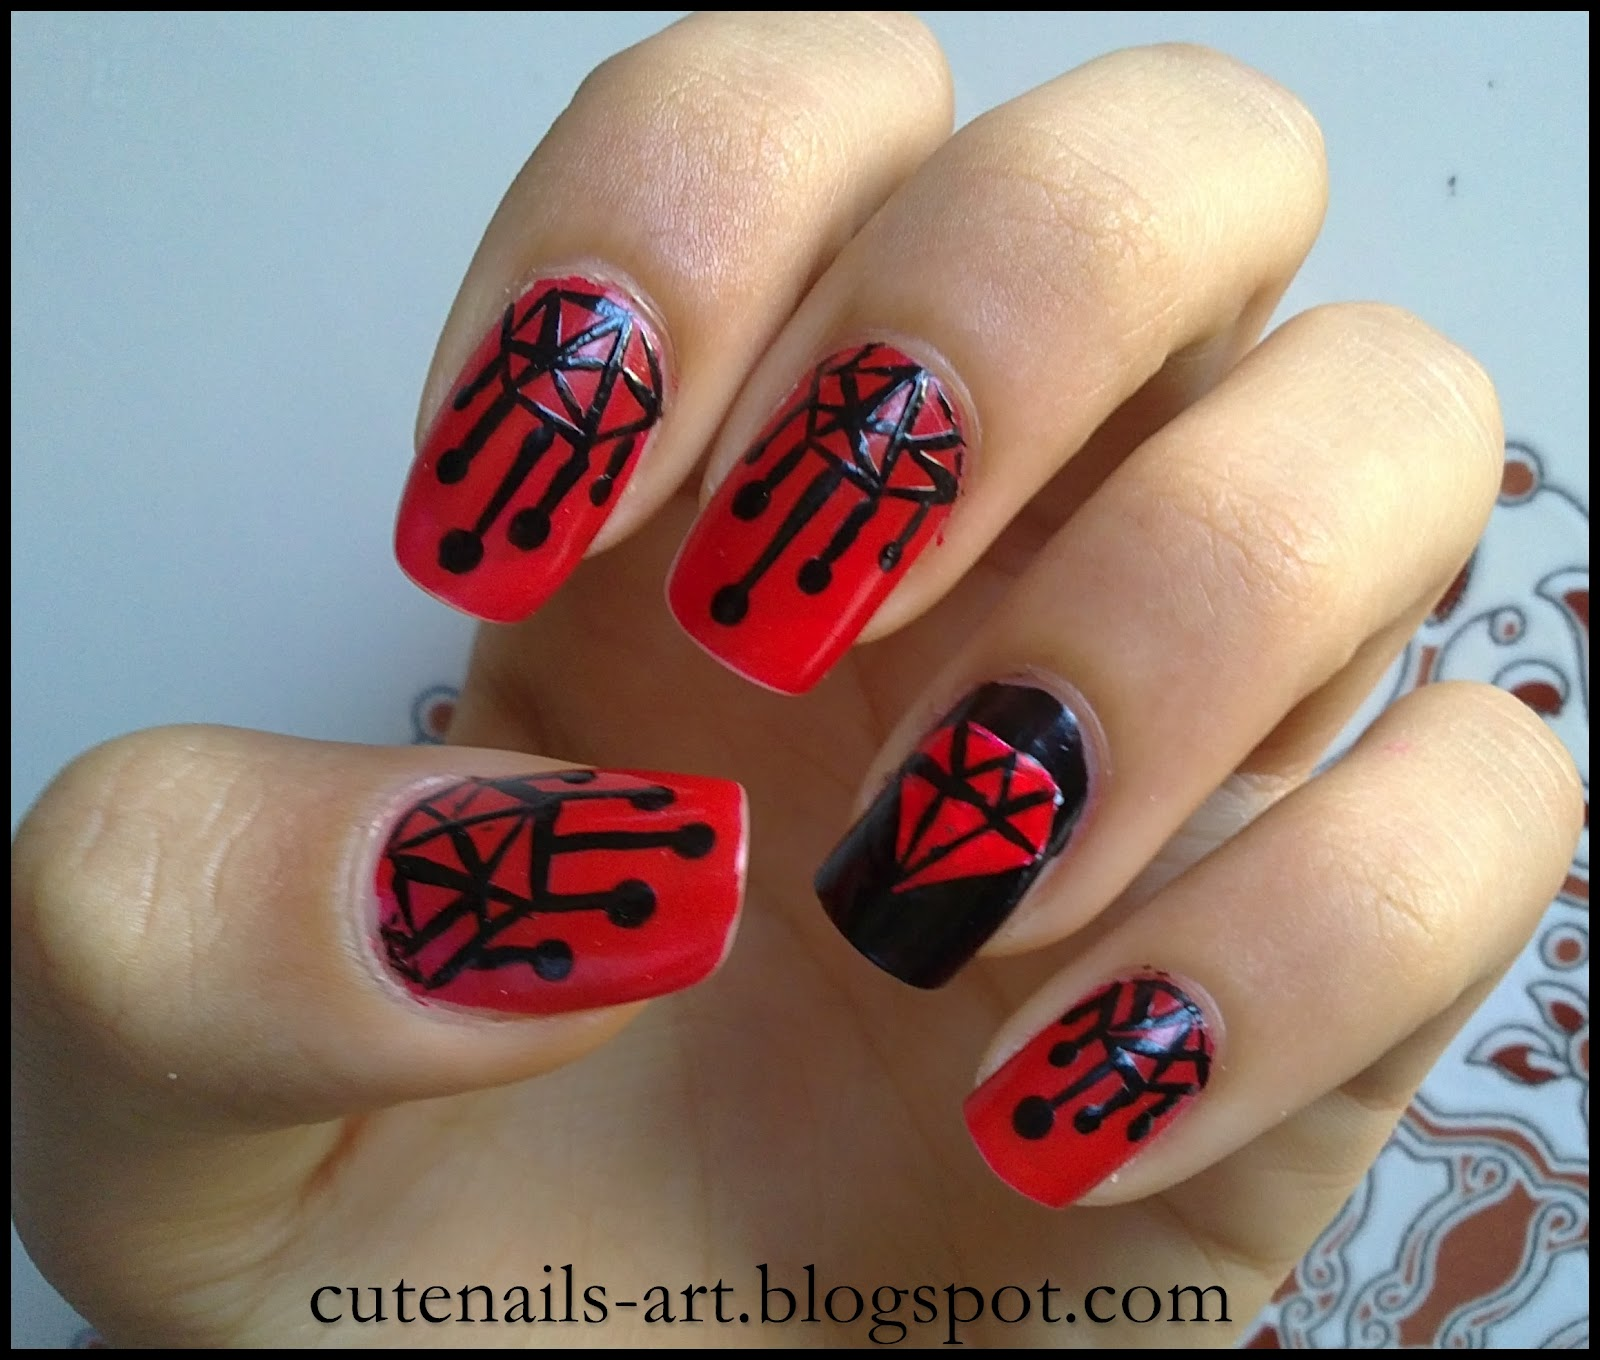 cutenails-art: Nail art black and red:chandeliers diamond design